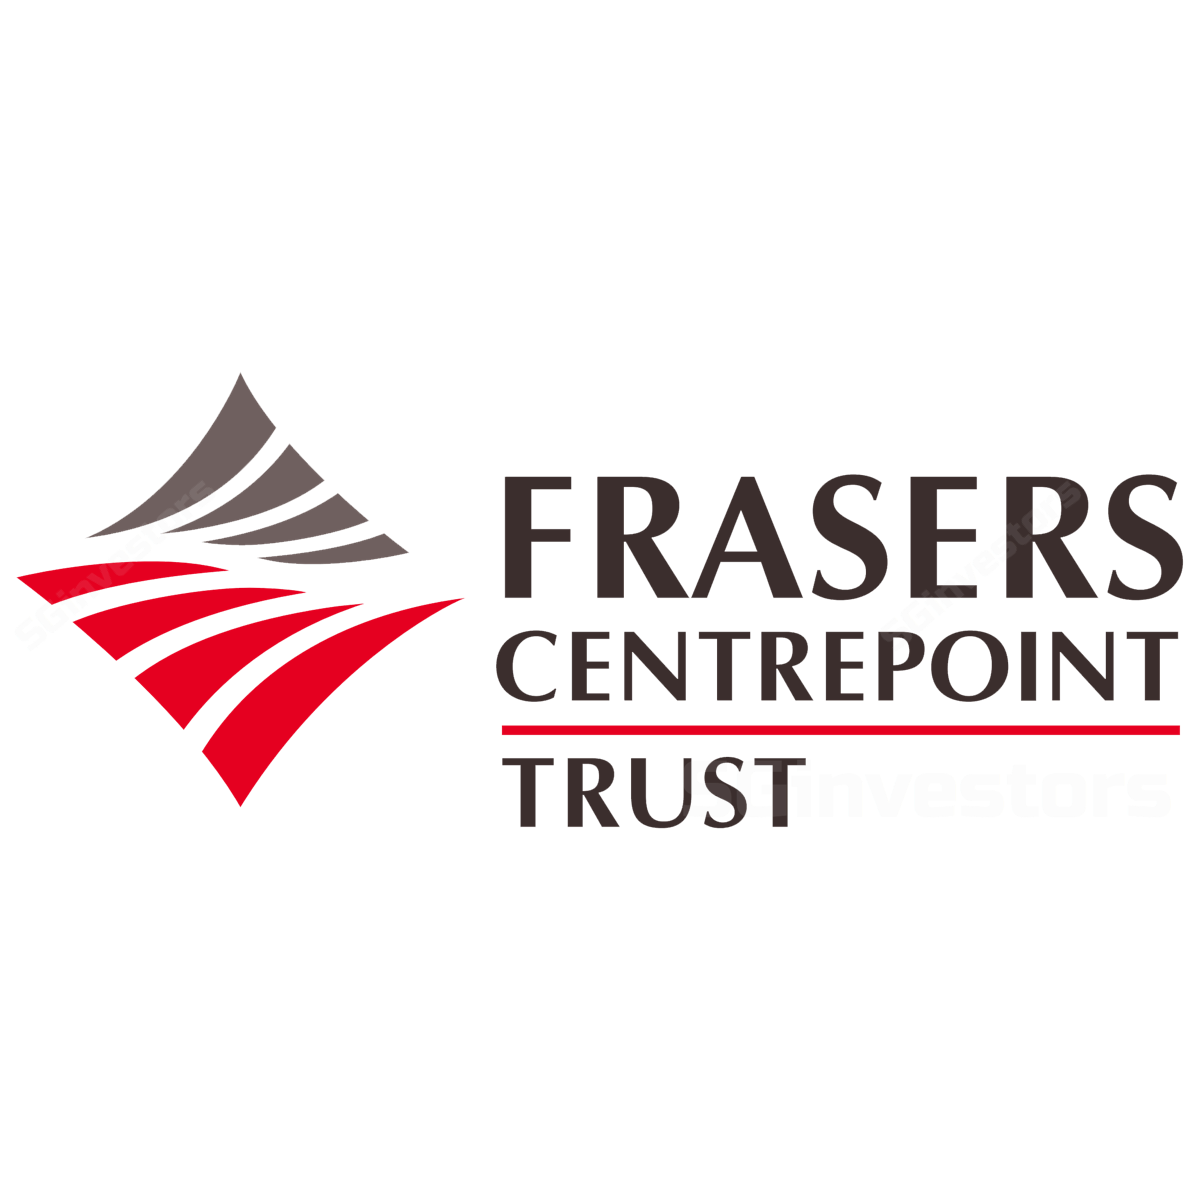 Frasers Centrepoint Trust - OCBC Investment 2017-07-25: Some Softness But Expect Improvement Ahead